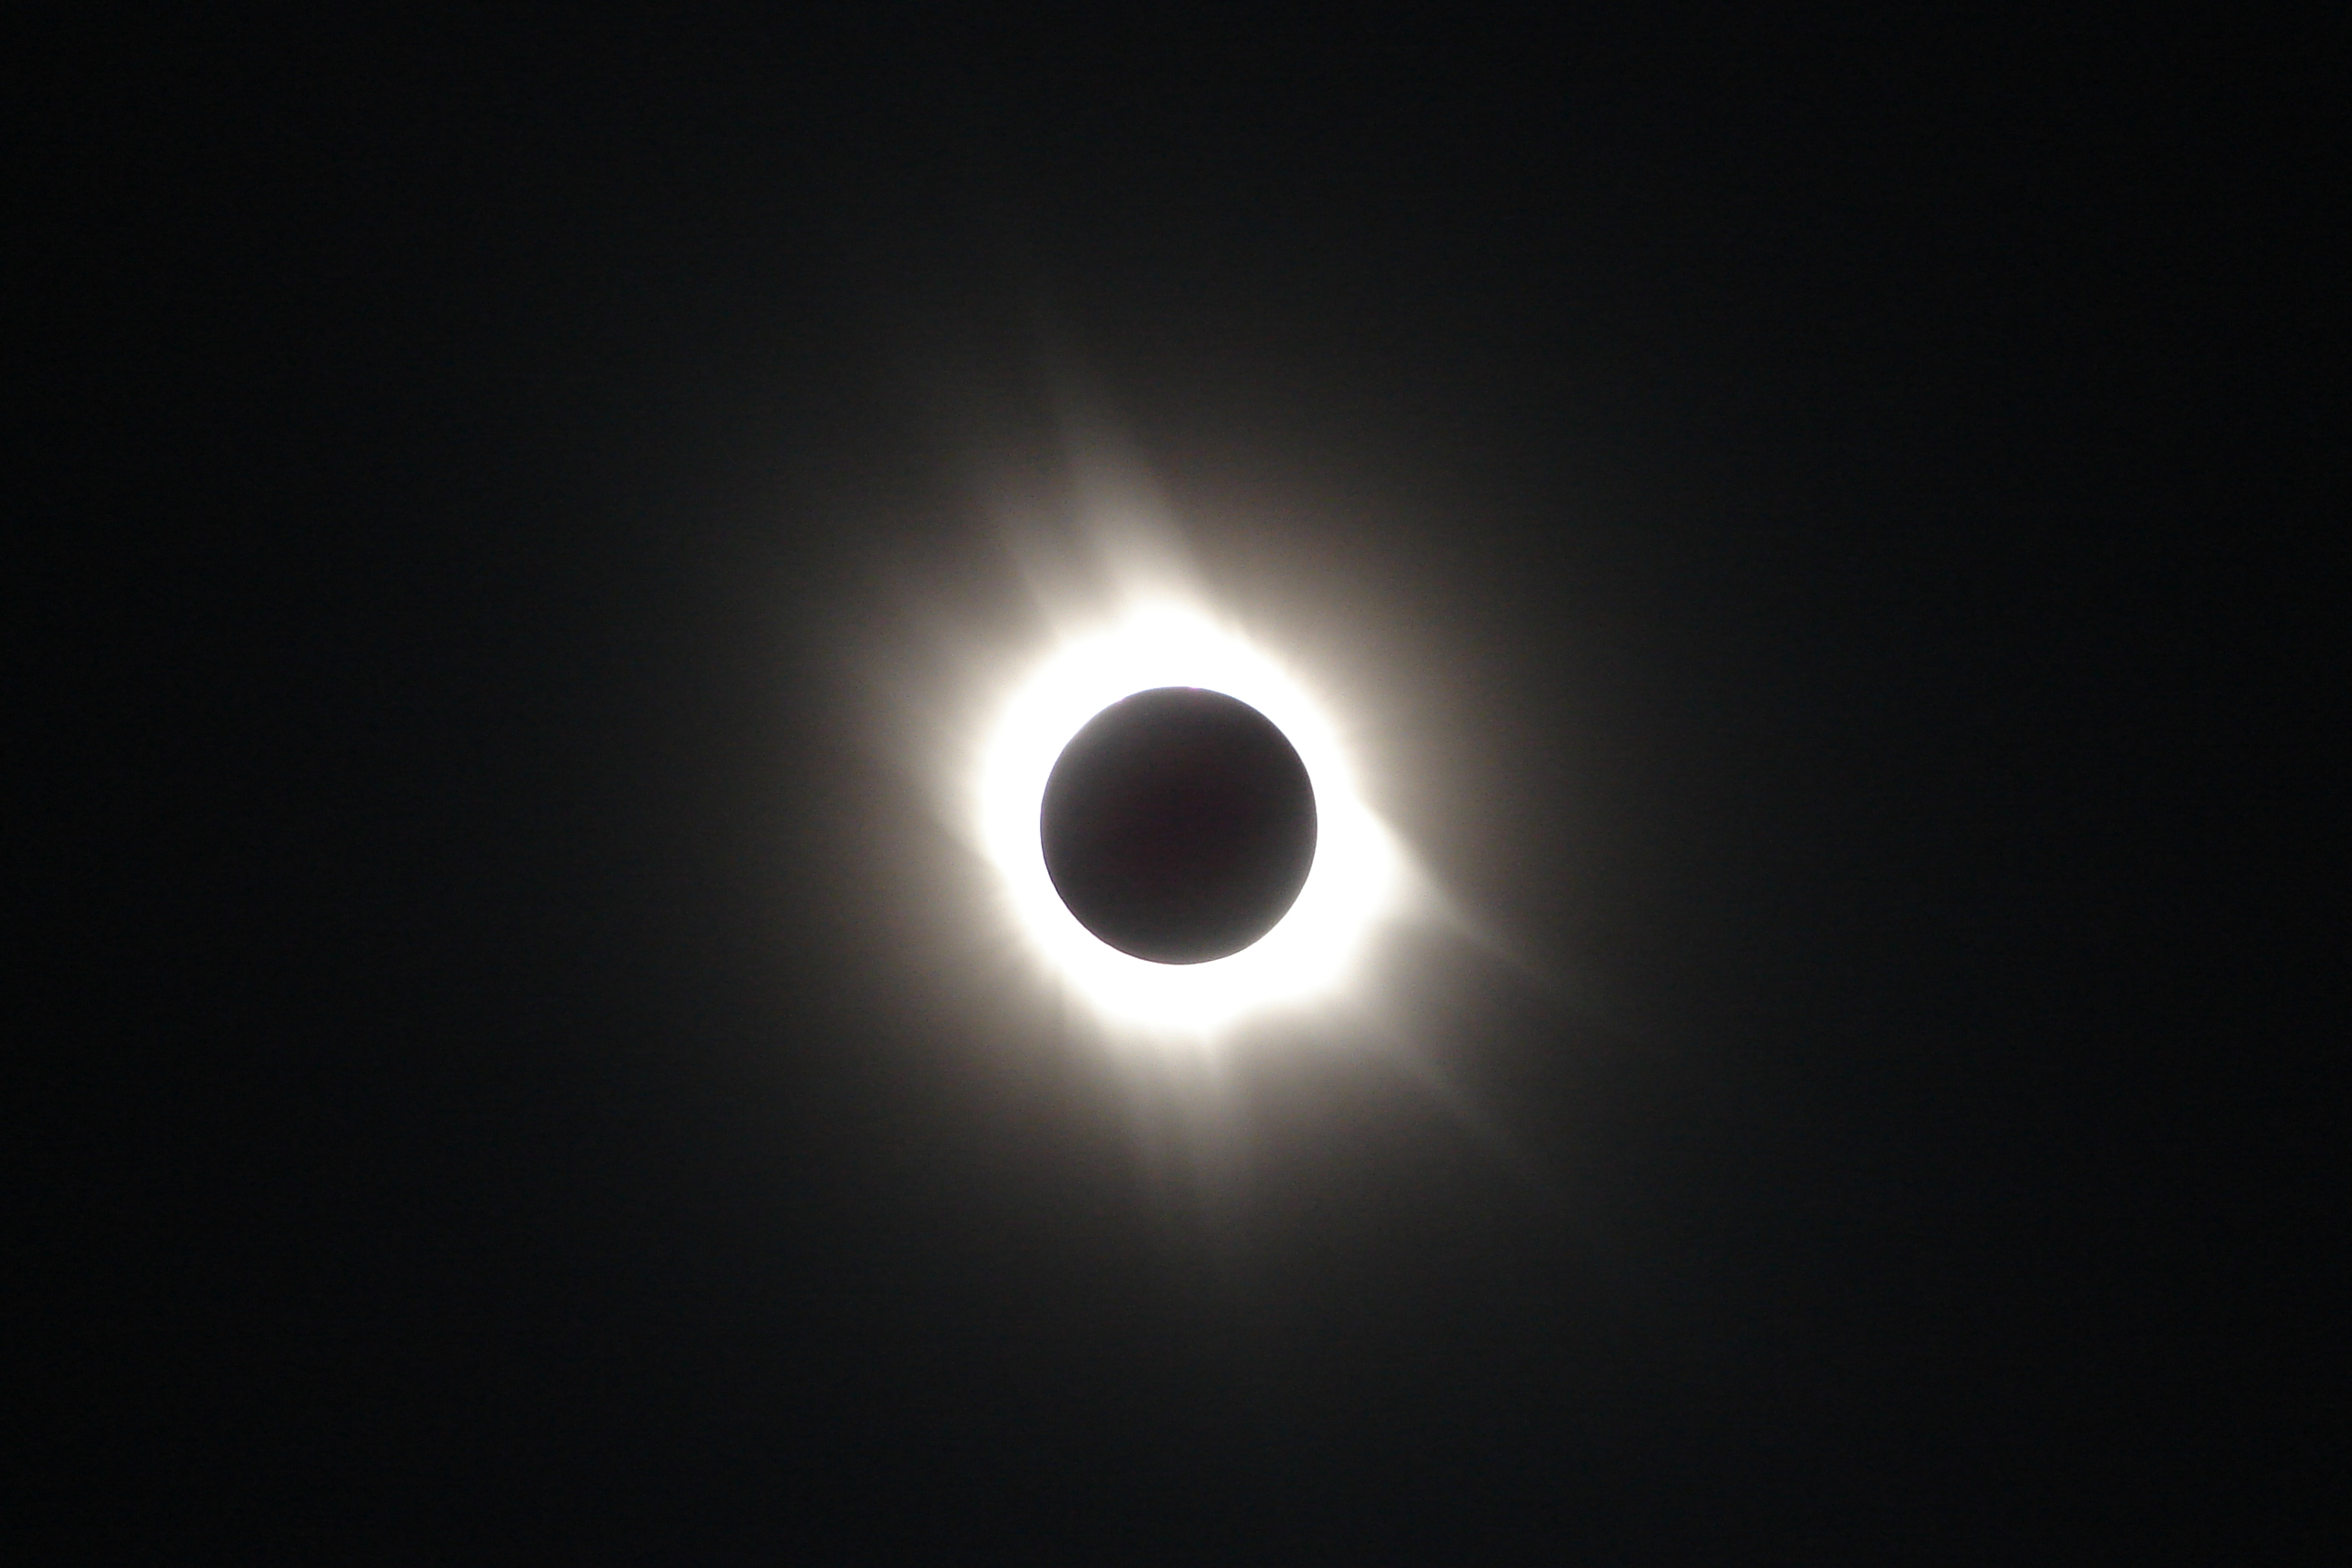 Total solar eclipse: the corona of the